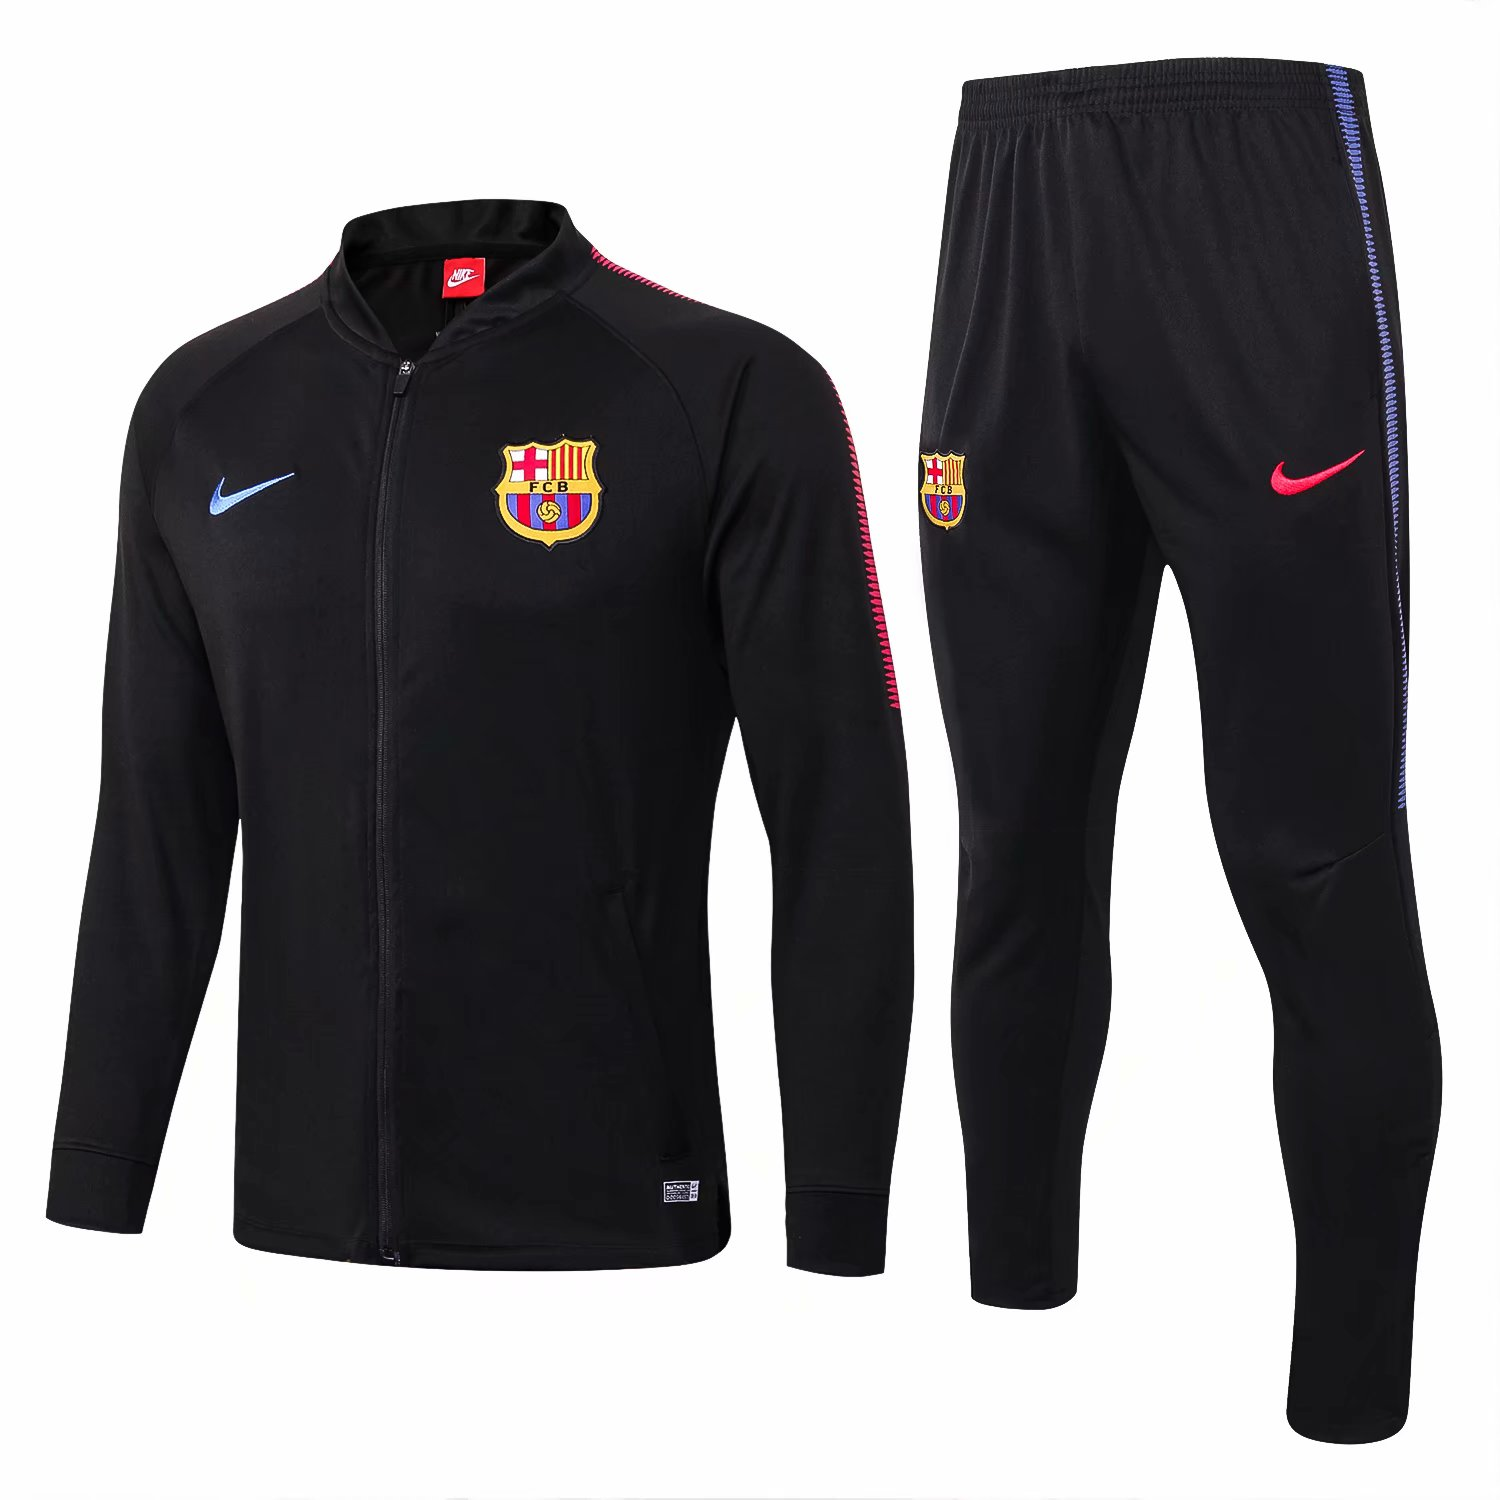 Barcelona Training Suit 2017-18 Black Low Neck Jacket + Pants